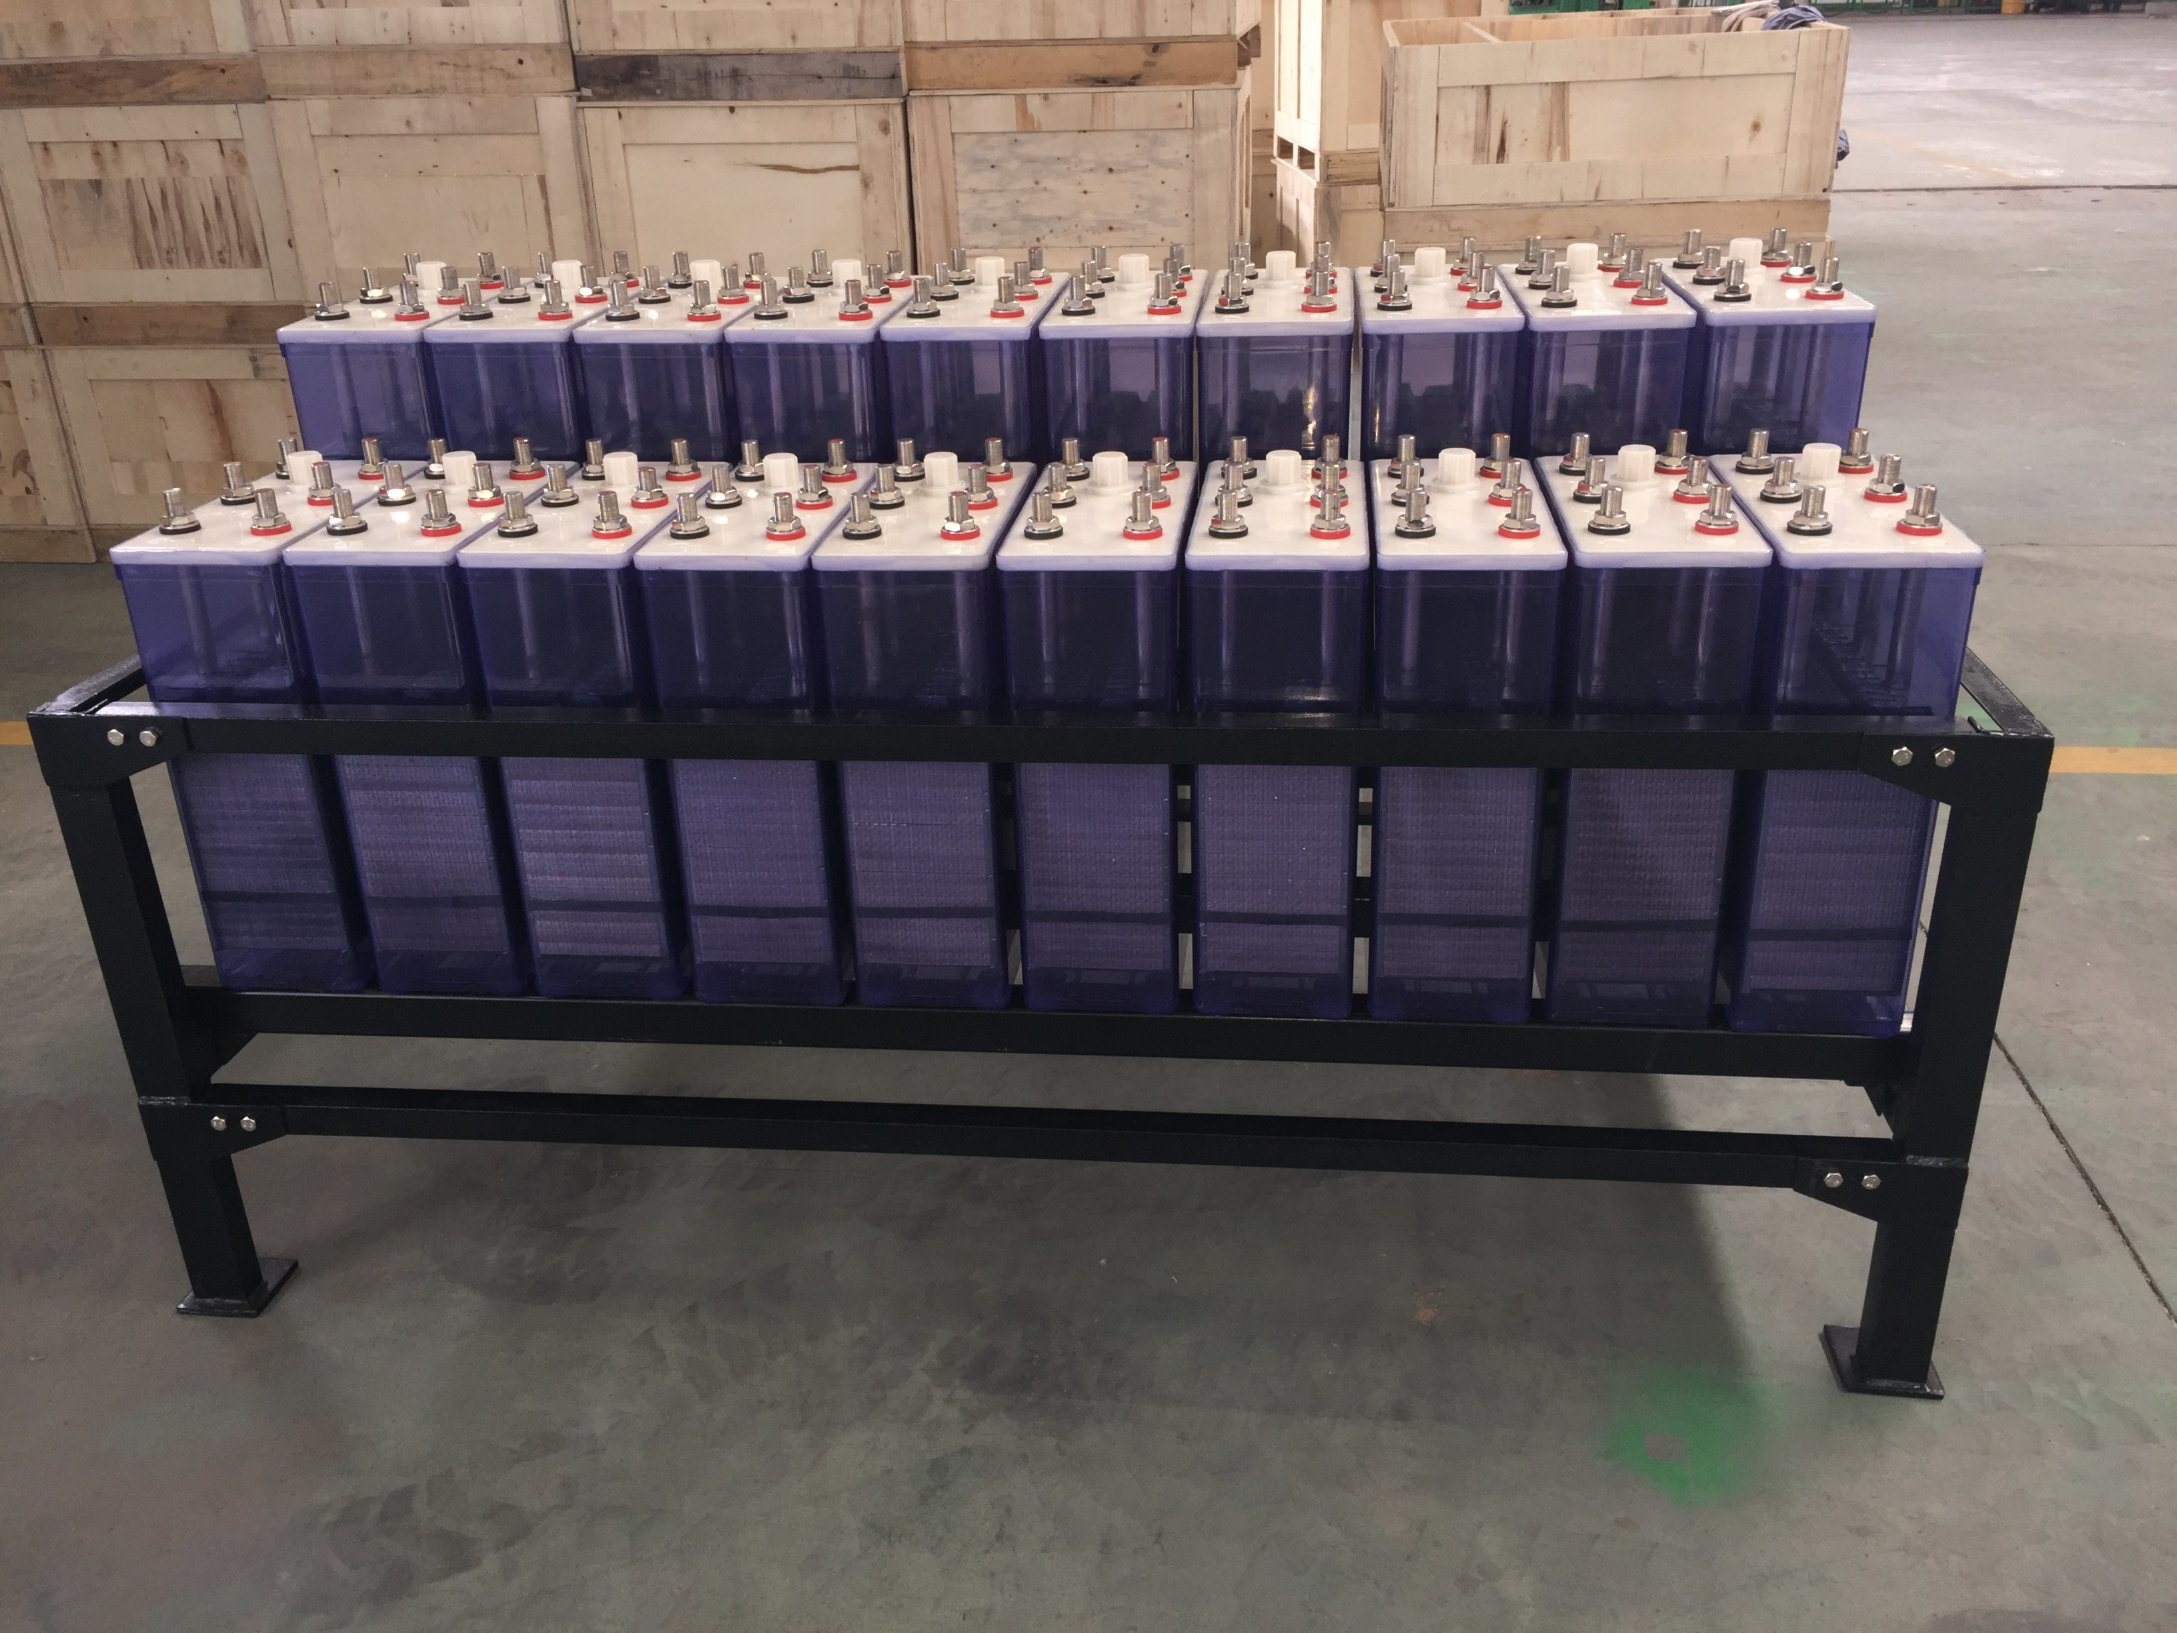 24V800ah (1.2V800AH) Max Life Batteries Ni-Fe Battery/Long Life Battery/Solar Nickel Iron Battery/Iron-Nickel Battery 12V 24V 48V 110V 125V 220V 380V Battery